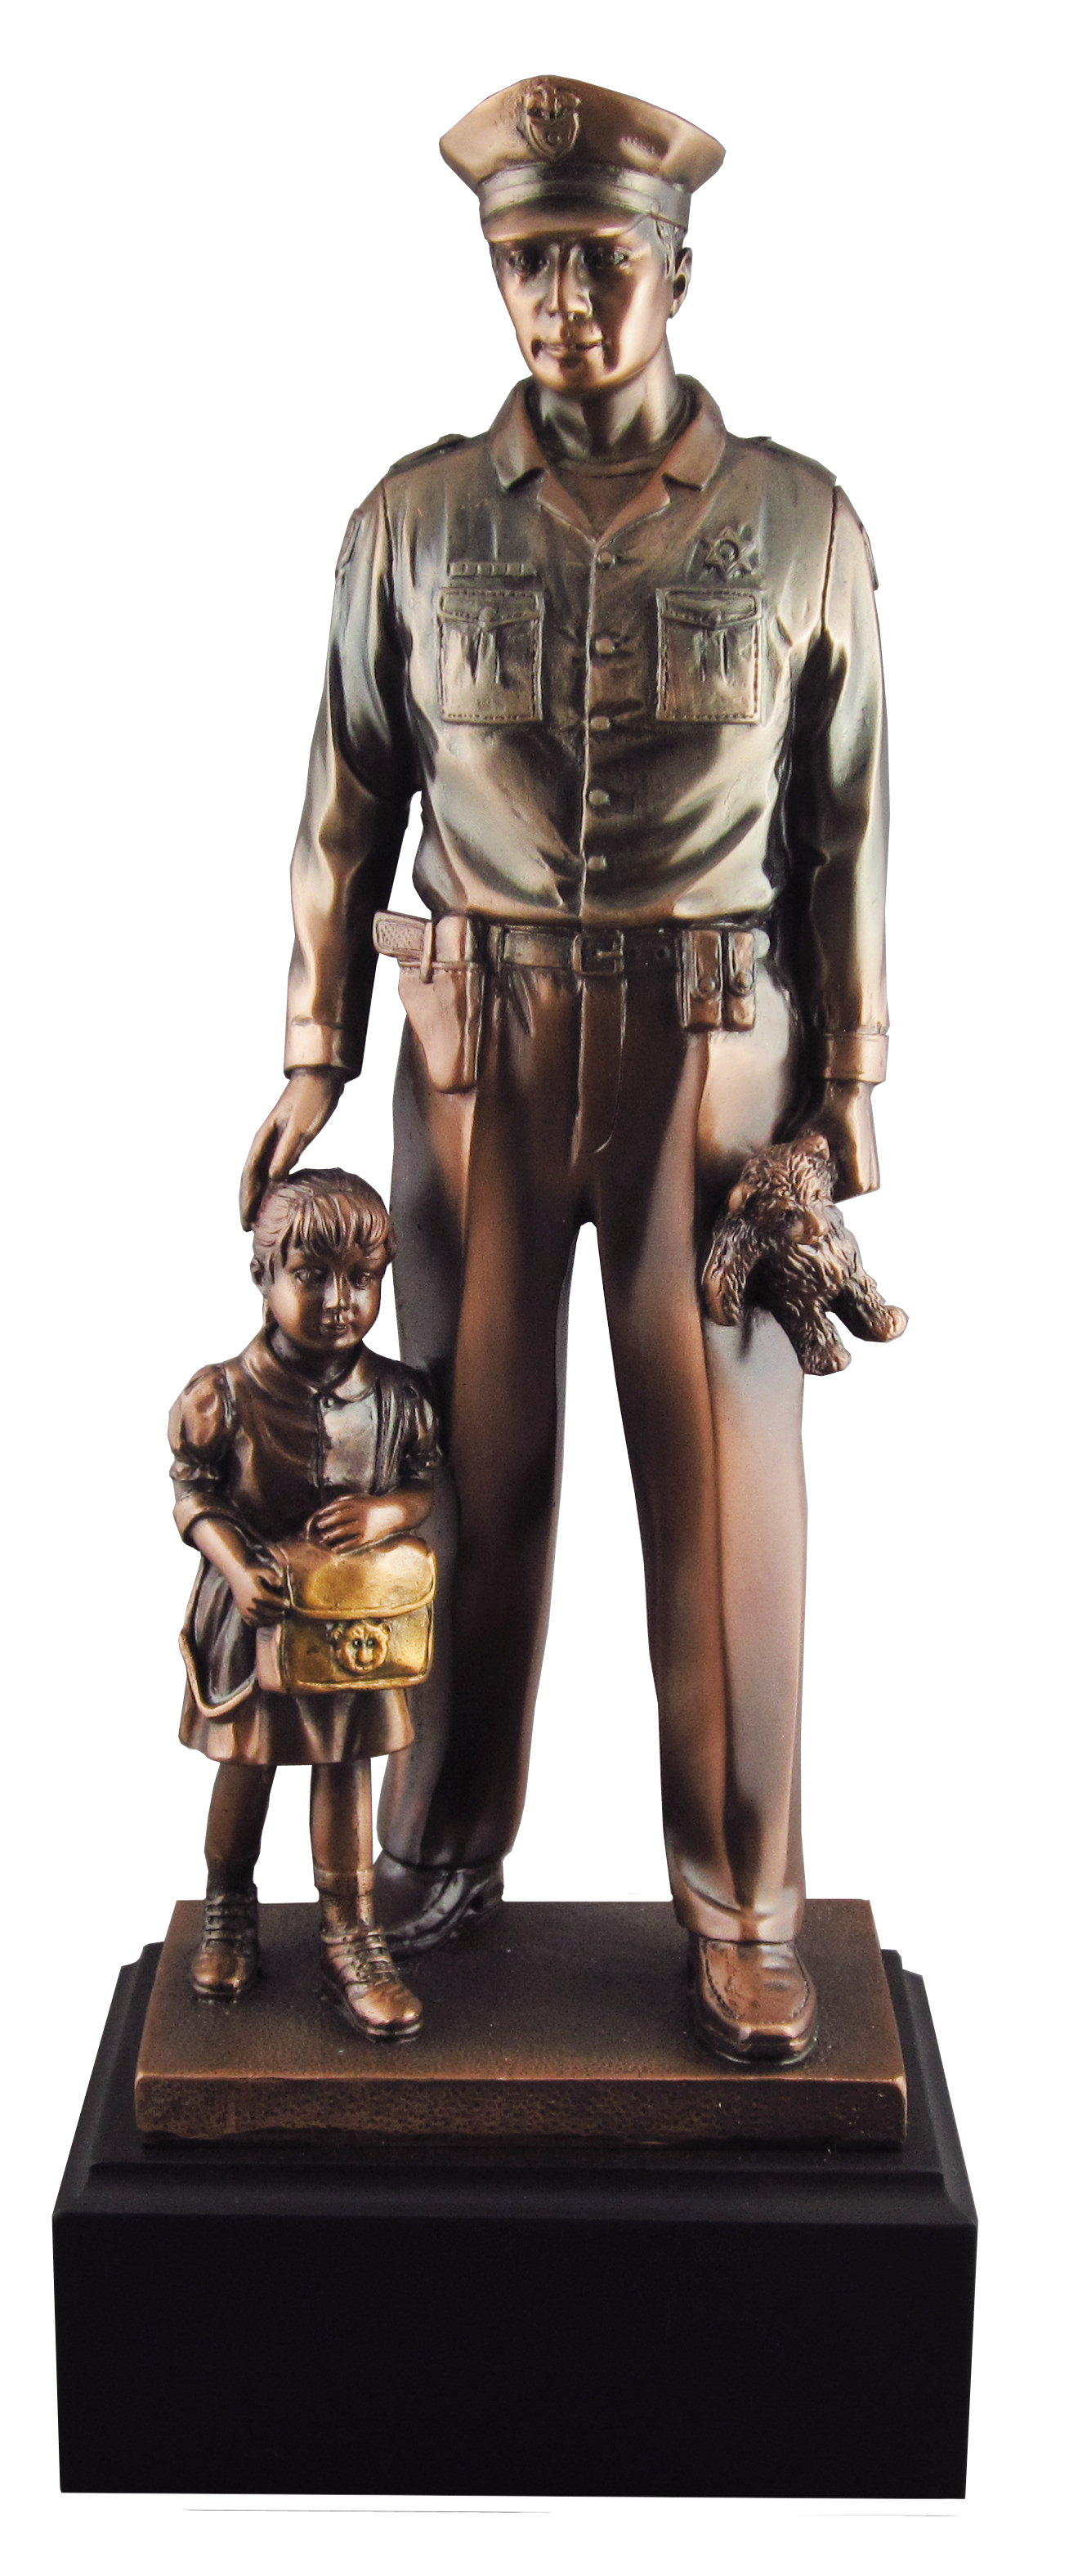 Policeman with Child Statue